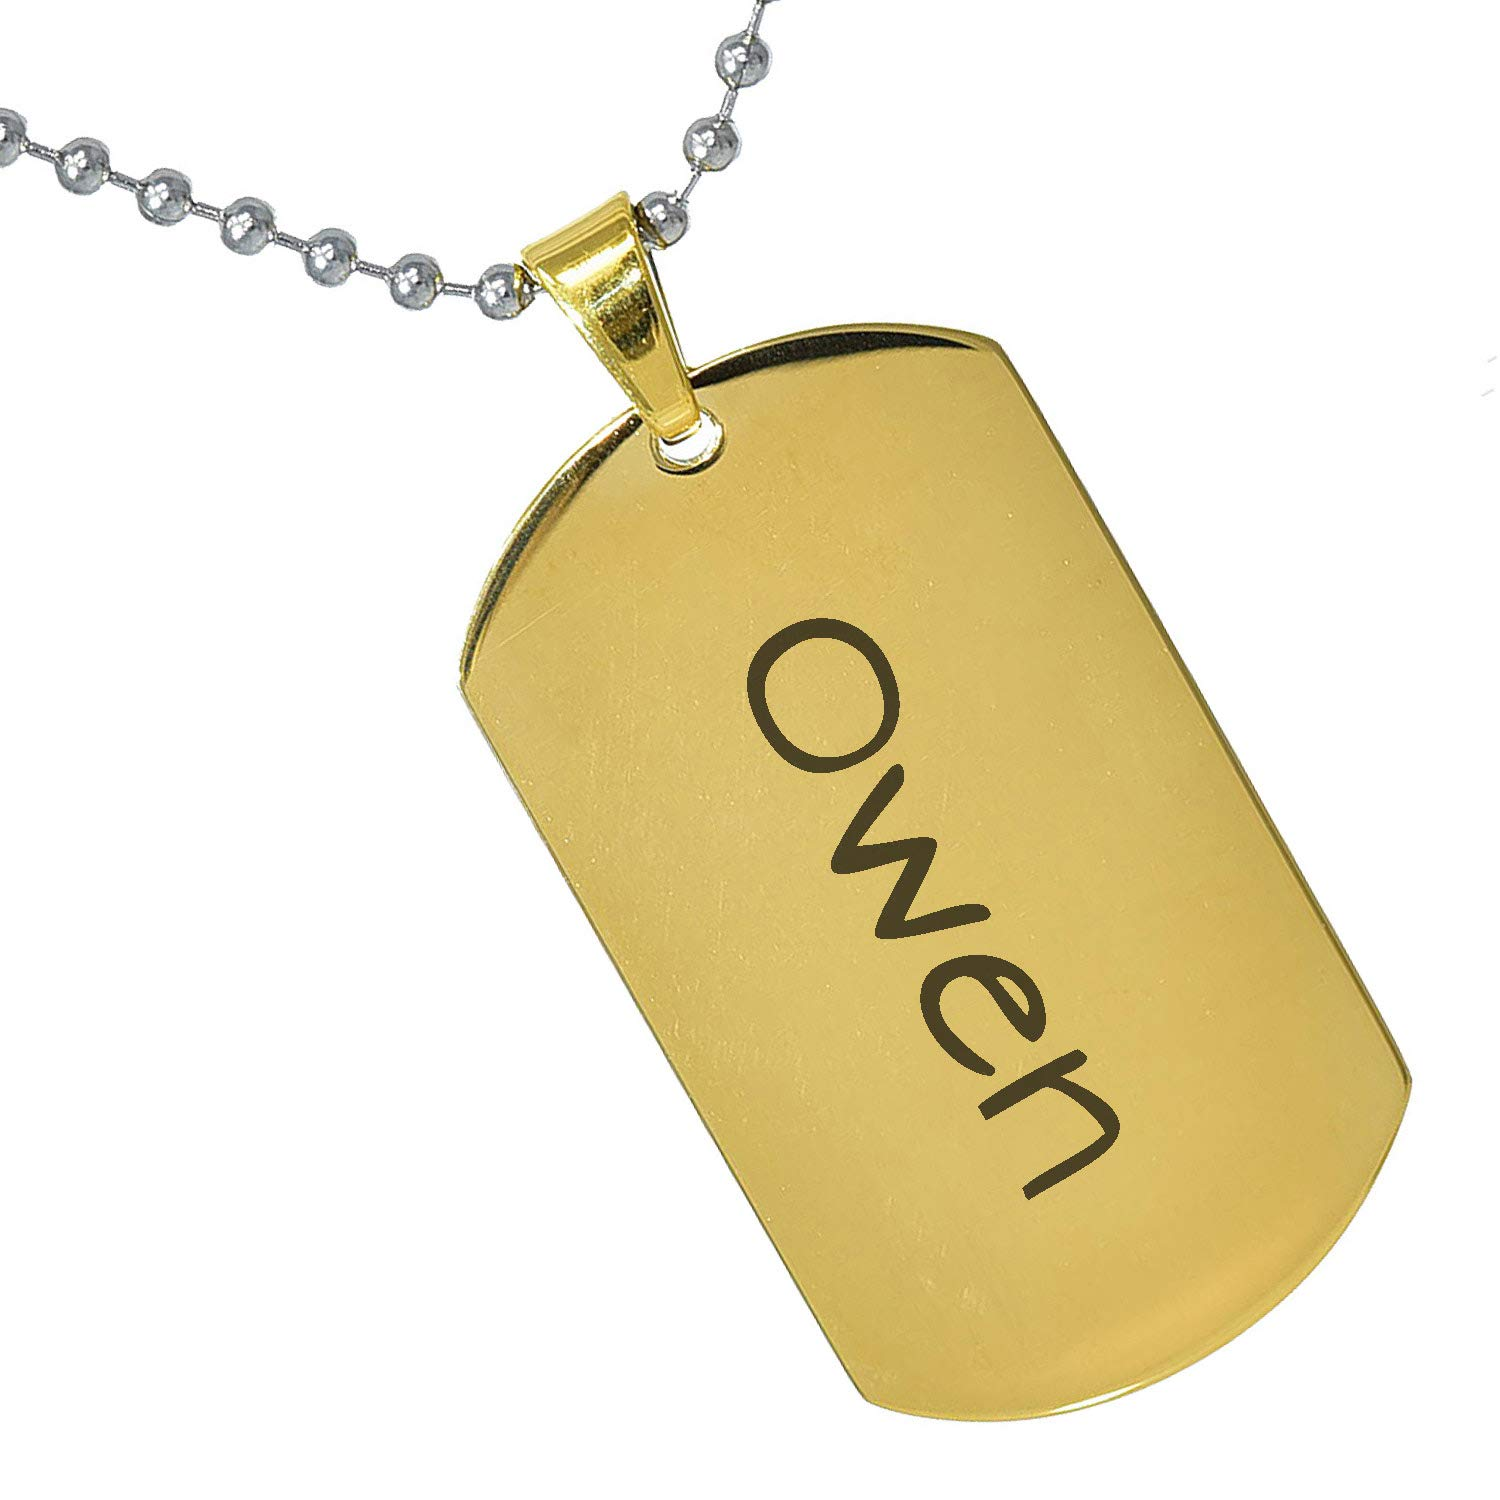 Stainless Steel Silver Gold Black Rose Gold Color Baby Name Owen Engraved Personalized Gifts For Son Daughter Boyfriend Girlfriend Initial Customizable Pendant Necklace Dog Tags 24 Ball Chain